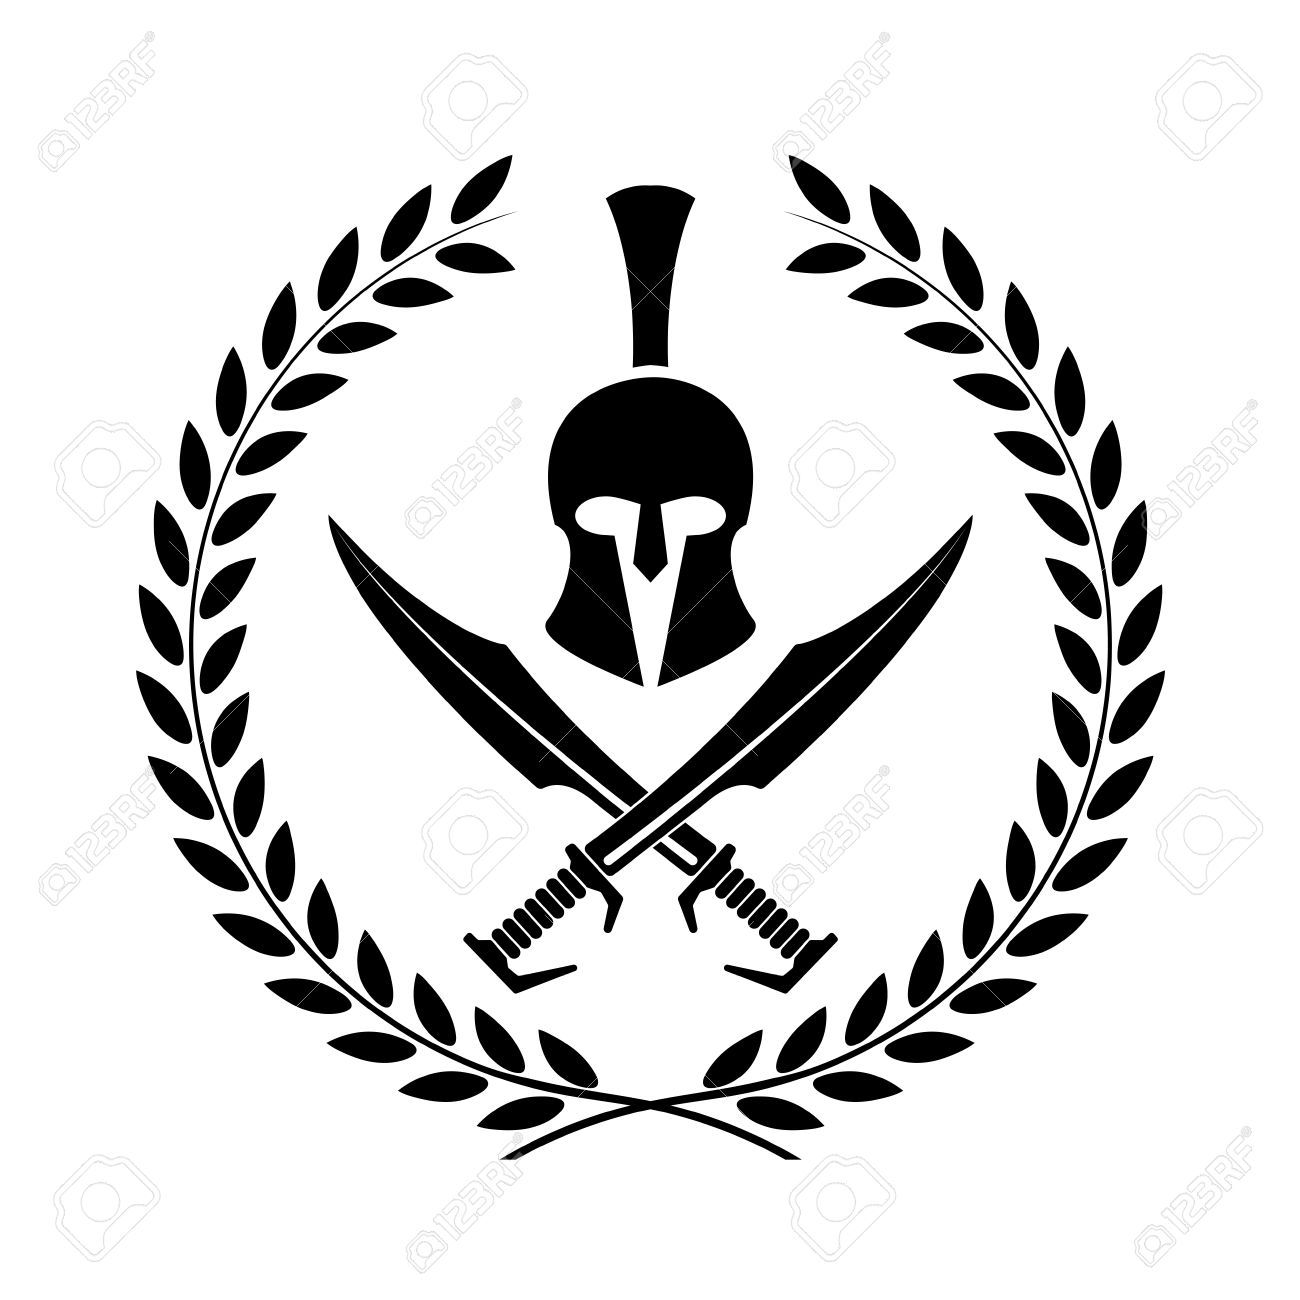 38663389 spartan helmet icon symbol of a warrior stock vector 38663389 spartan helmet icon symbol of a warrior biocorpaavc